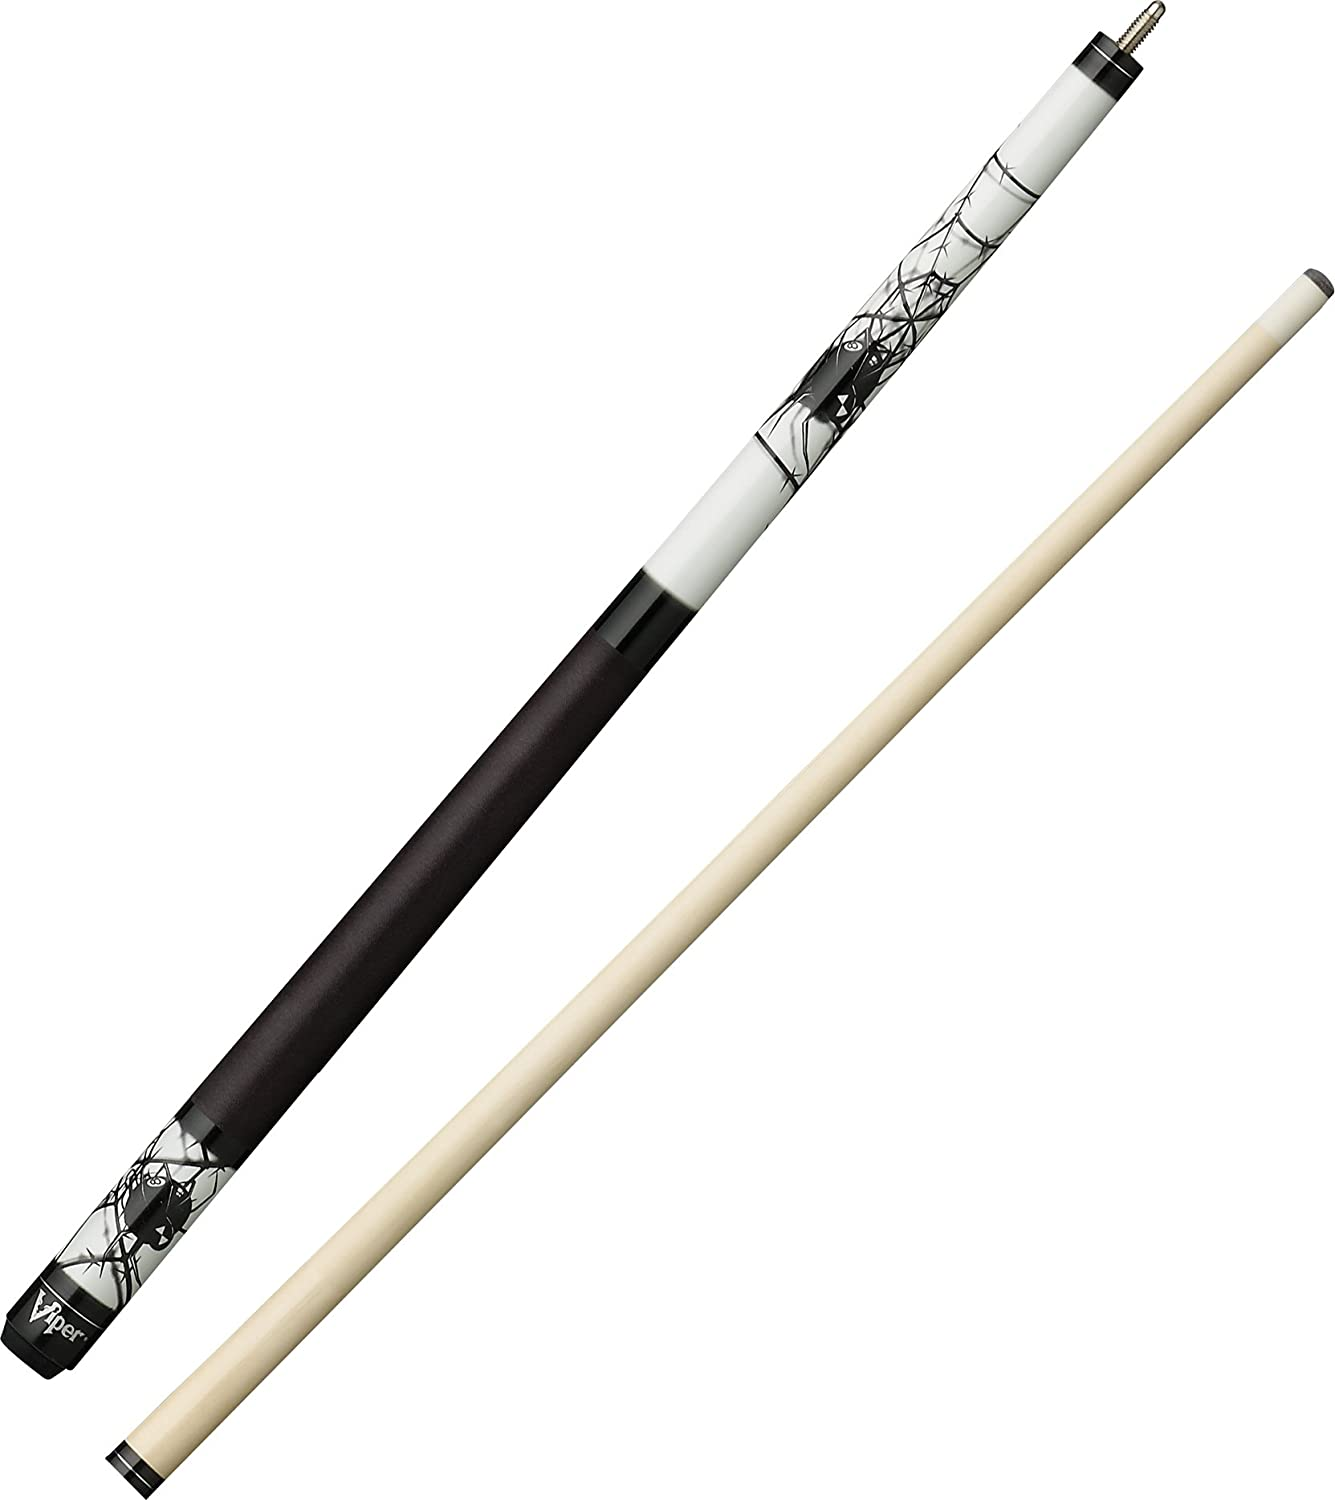 "Viper Junior 48"" 2-Piece Billiard/Pool Cue"